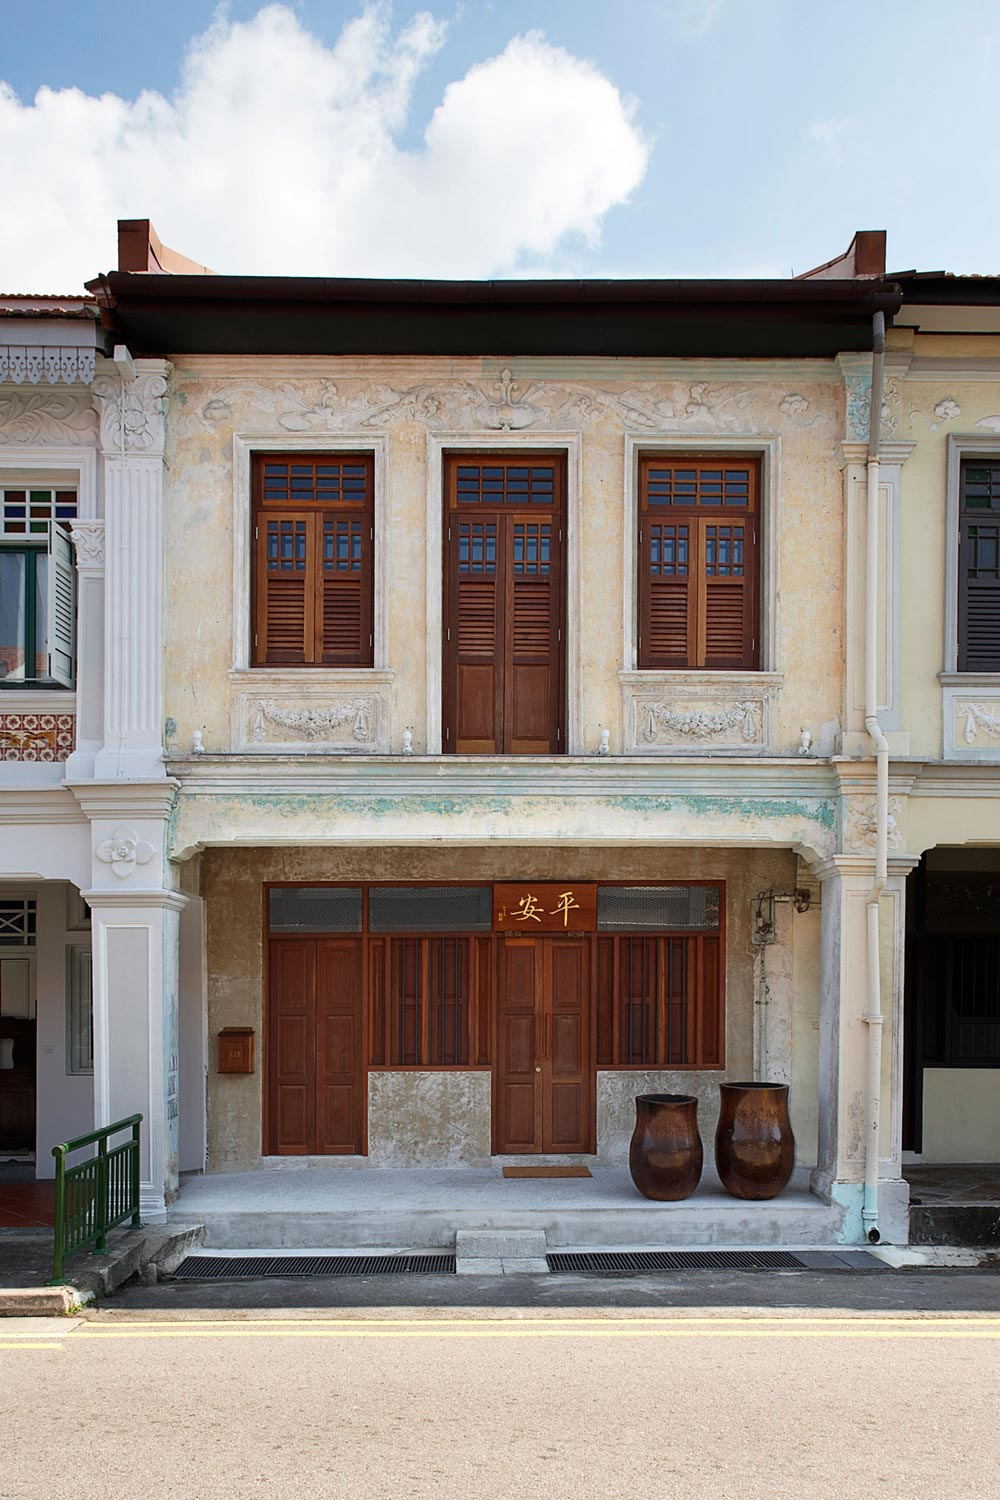 Lucky Shophouse in Joo Chiat, Singapore